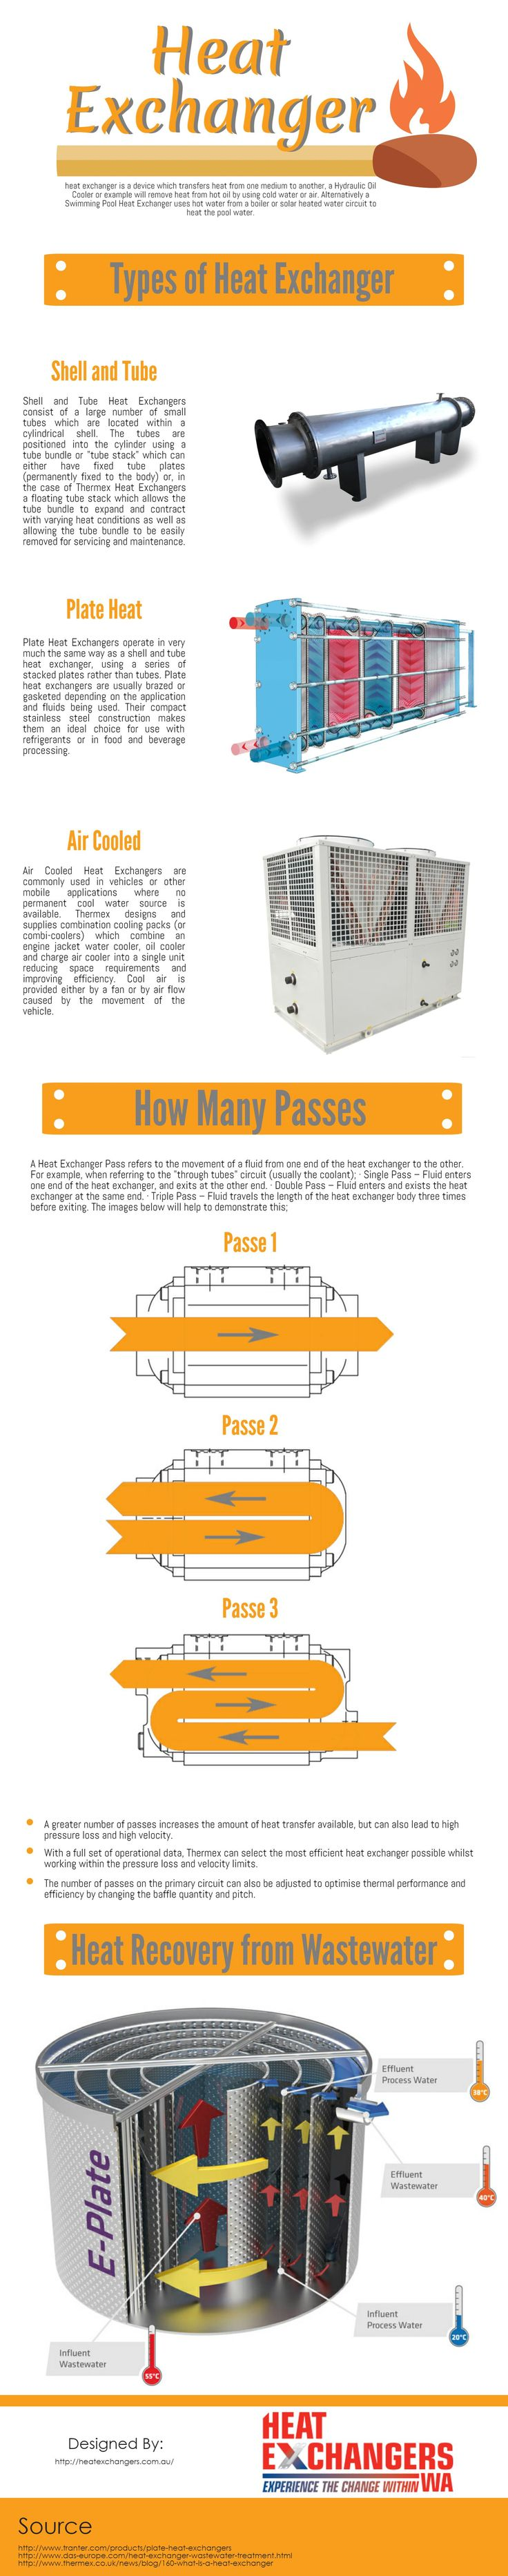 This infographic was made by Heat Exchangers. The infographic demonstrates the different types of heat exchanger. A shell and tube heat exchanger is a class of heat exchanger designs. It is the most common ... fluid in the tubes passes through the fluid in the shell. In a single pass heat exchanger, the fluid goes in one end of each tube and out the other.